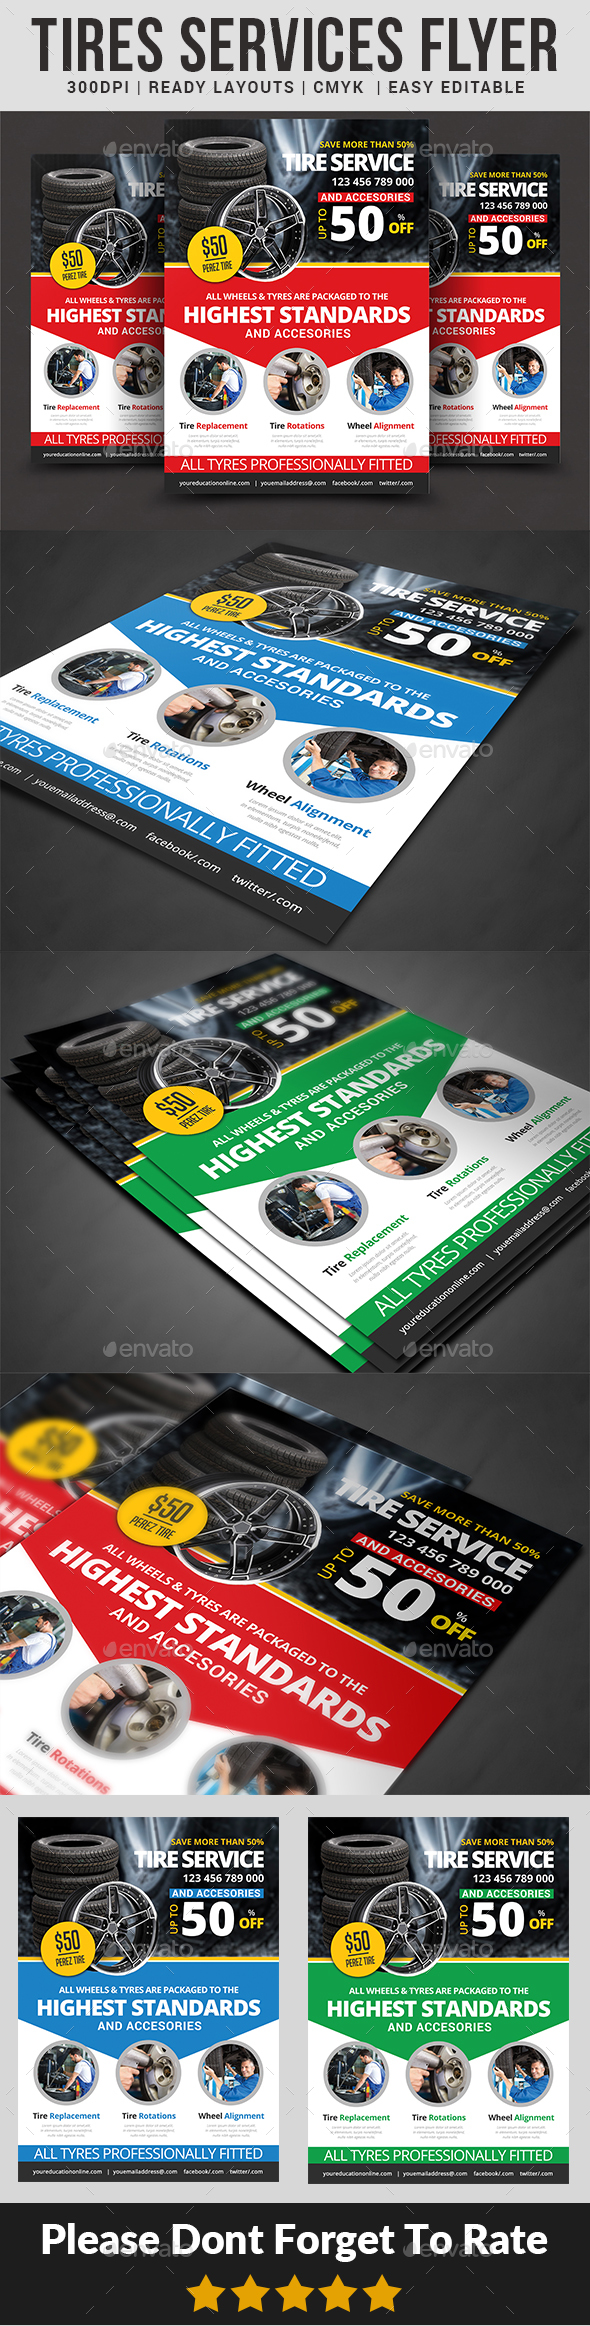 Tires Services Flyer - Commerce Flyers